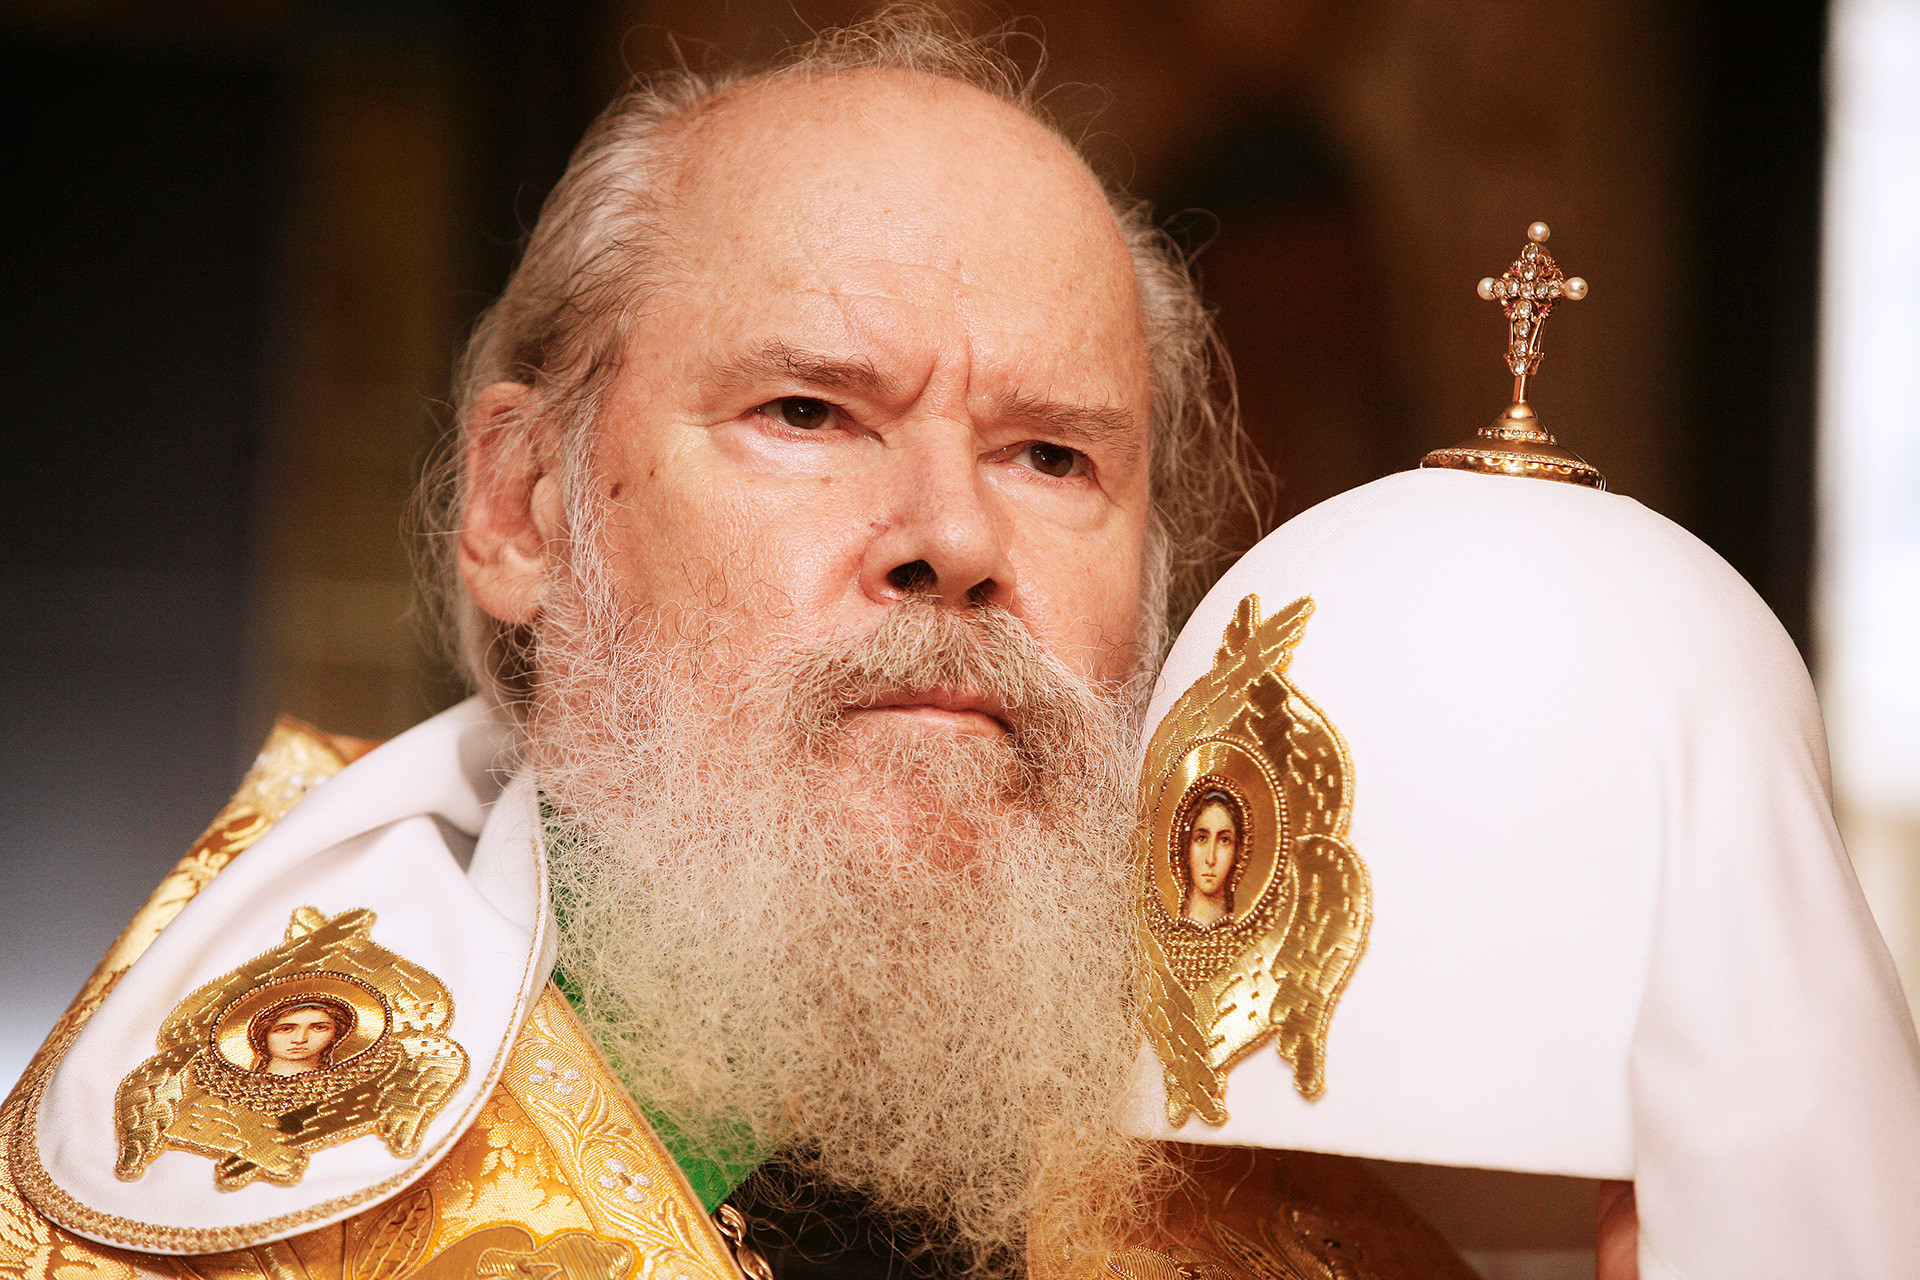 Patriarch of Russian Orthodox church Alexy II